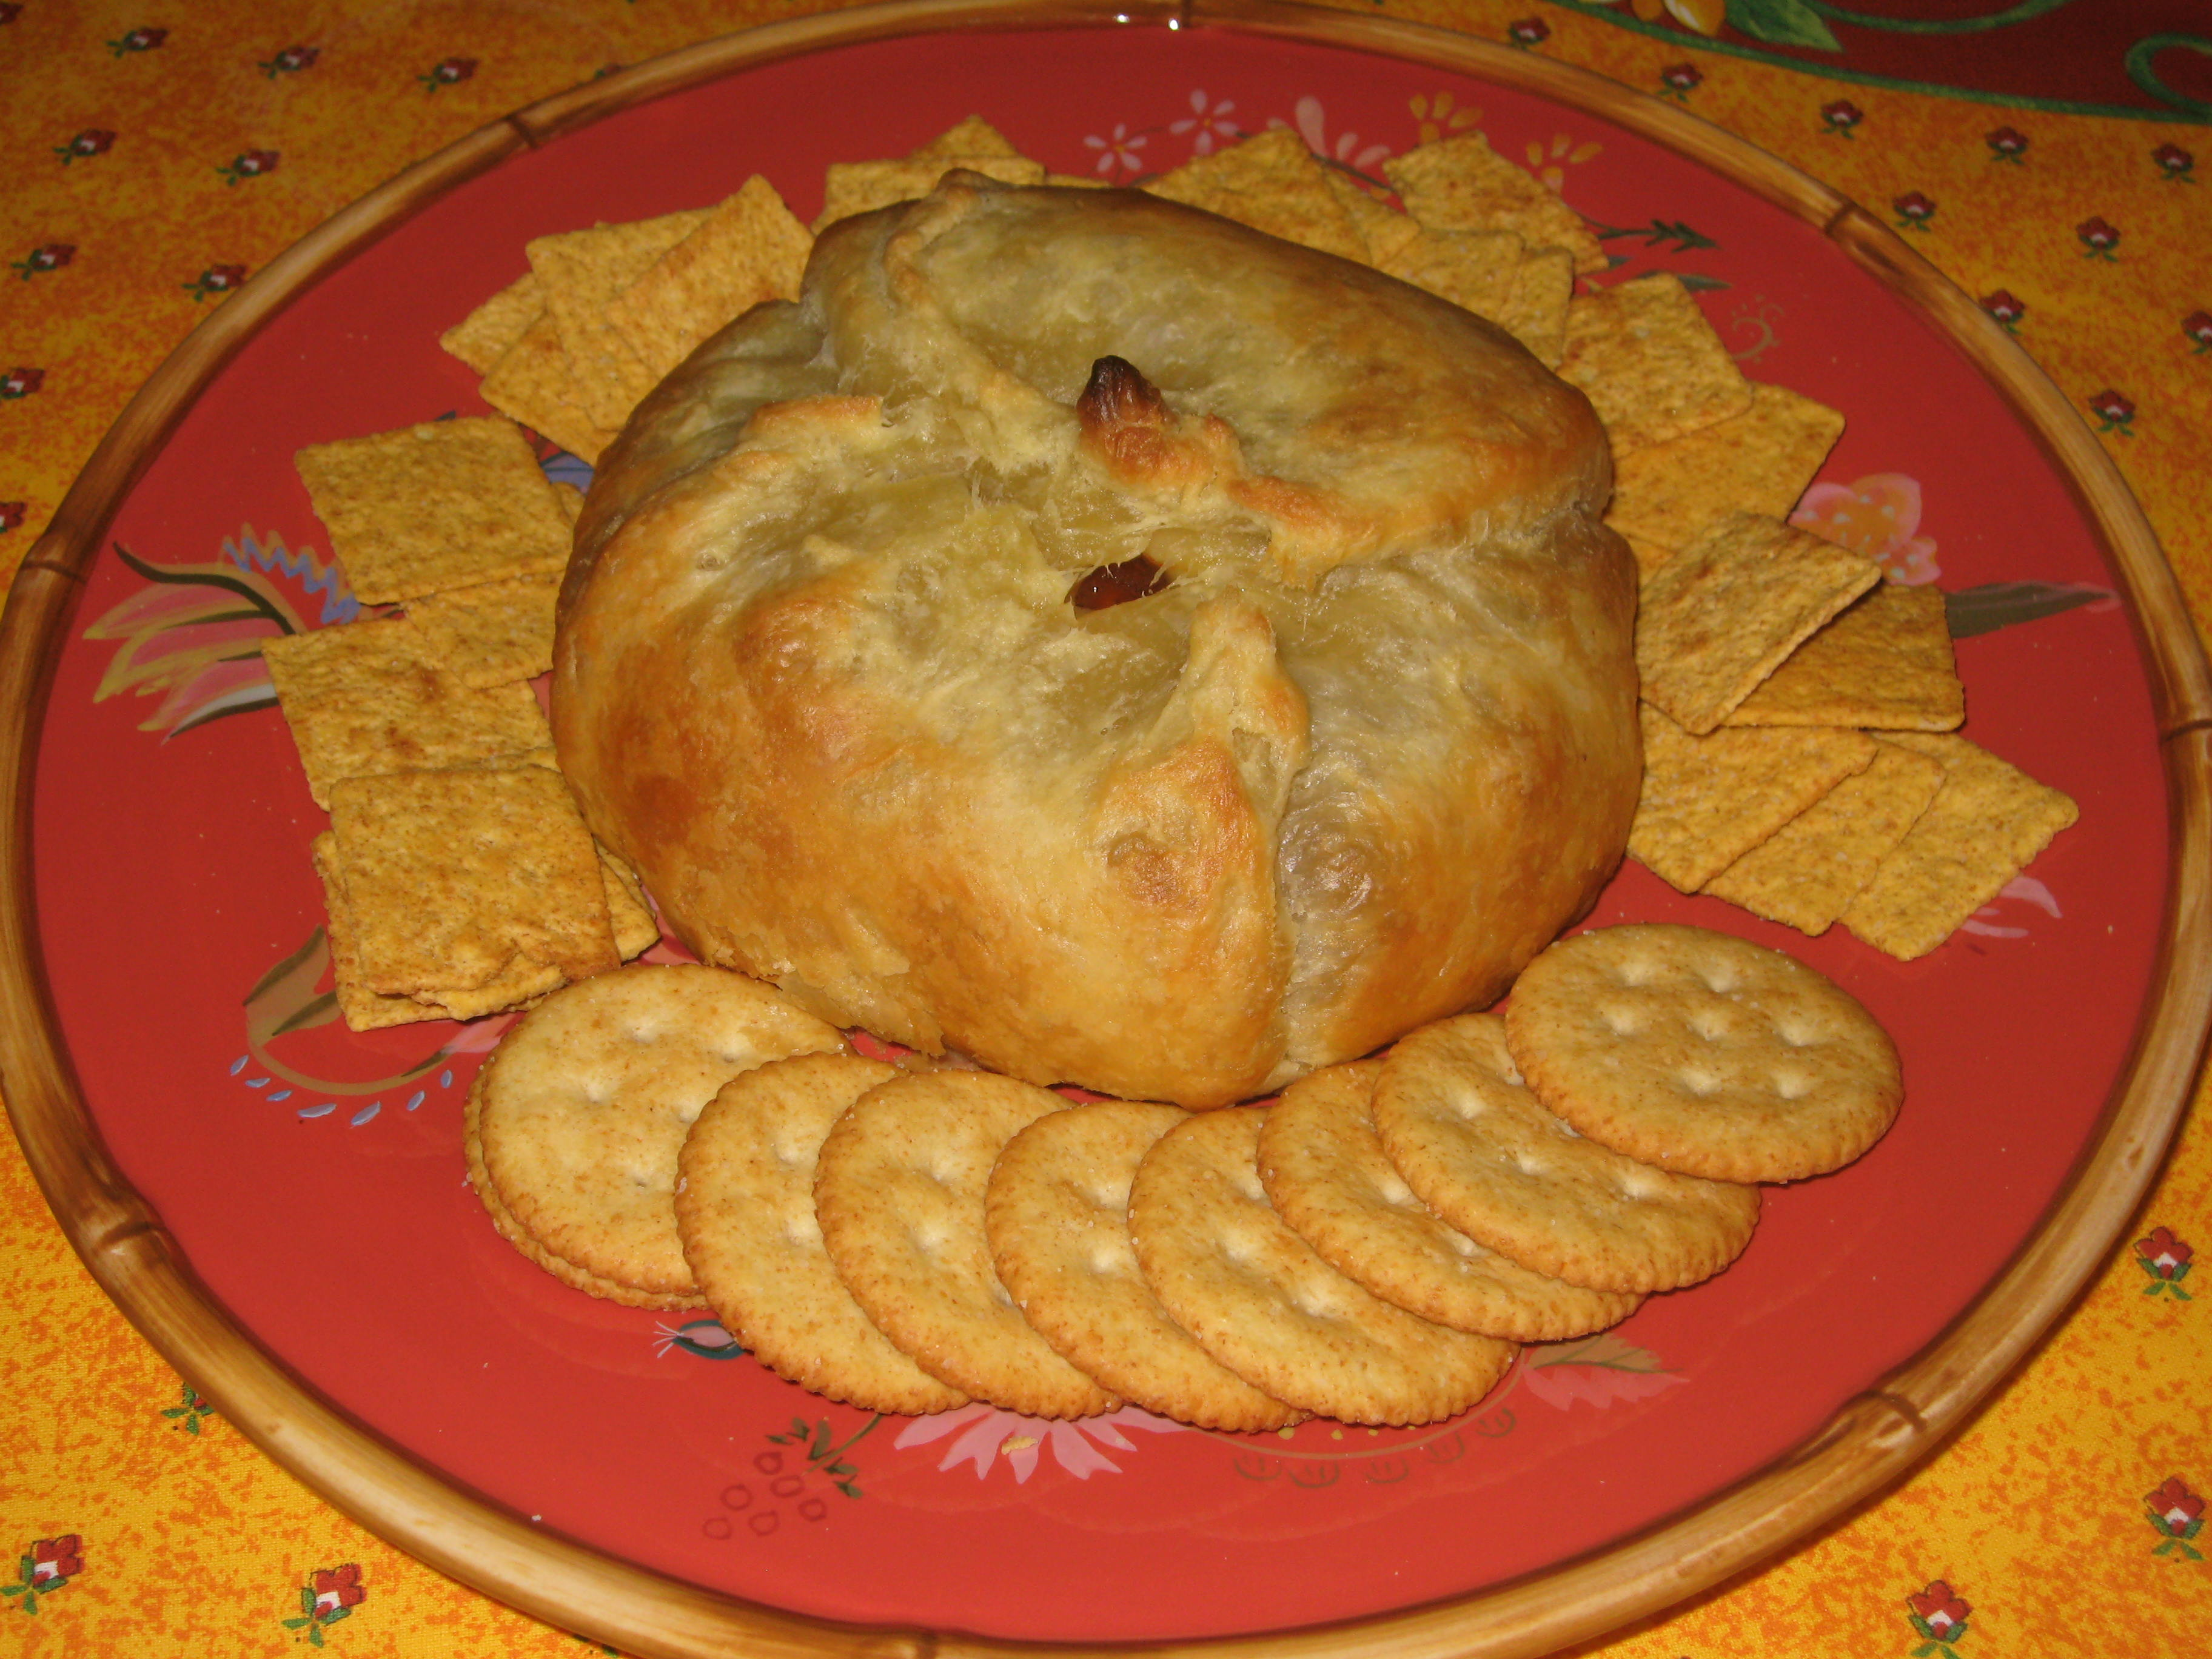 BAKED BRIE IN PUFF PASTRY WITH GUAVA   Mary's Joy of Family Cooking